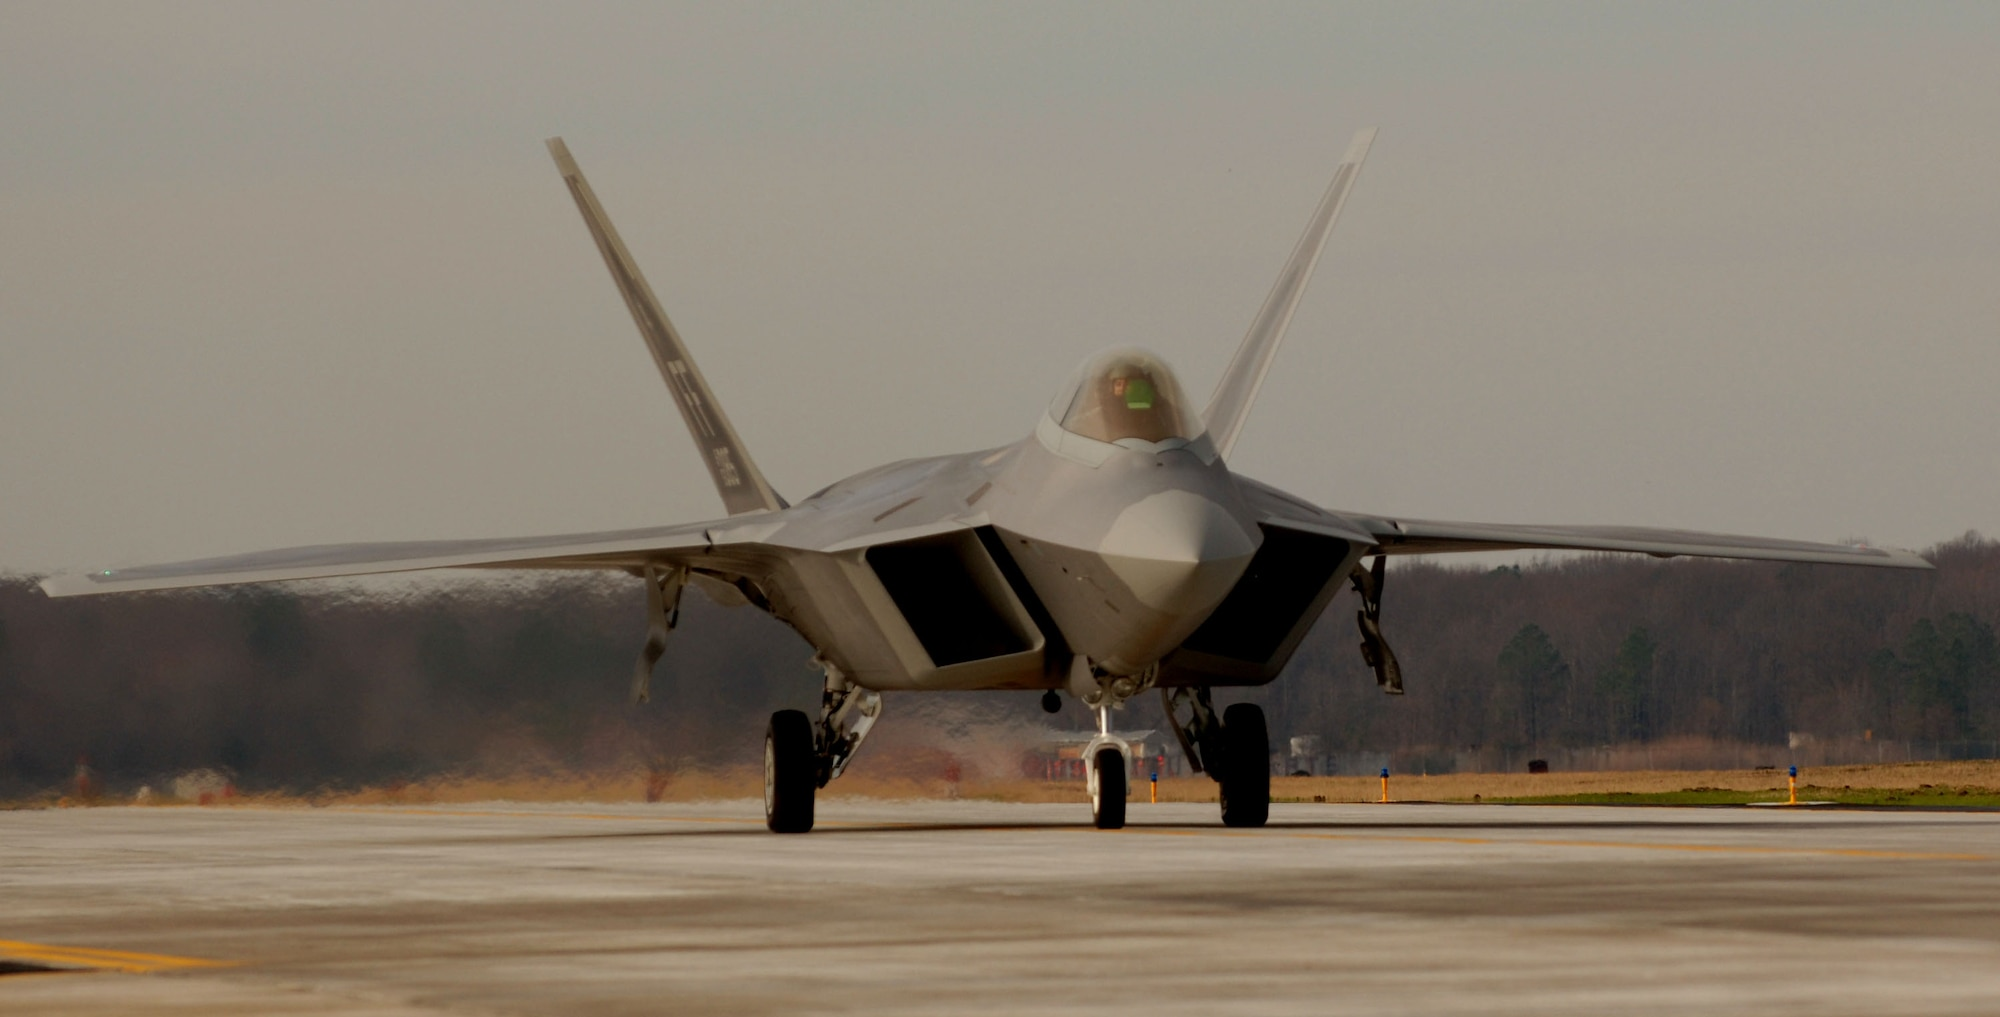 1st Fighter Wing Commander Brig. Gen. Burton Field, taxi's down the runway in the 40th F-22A Raptor delivered  from the factory at Lockheed Martin in Marietta, Ga., to the 1st Fighter Wing at Langley AFB in Virginia on Jan. 19, 2007. The delivery of this mighty aircraft marks the completion of delivery from the factory to the installation. (USAF Photo by Staff Sgt Samuel Rogers)